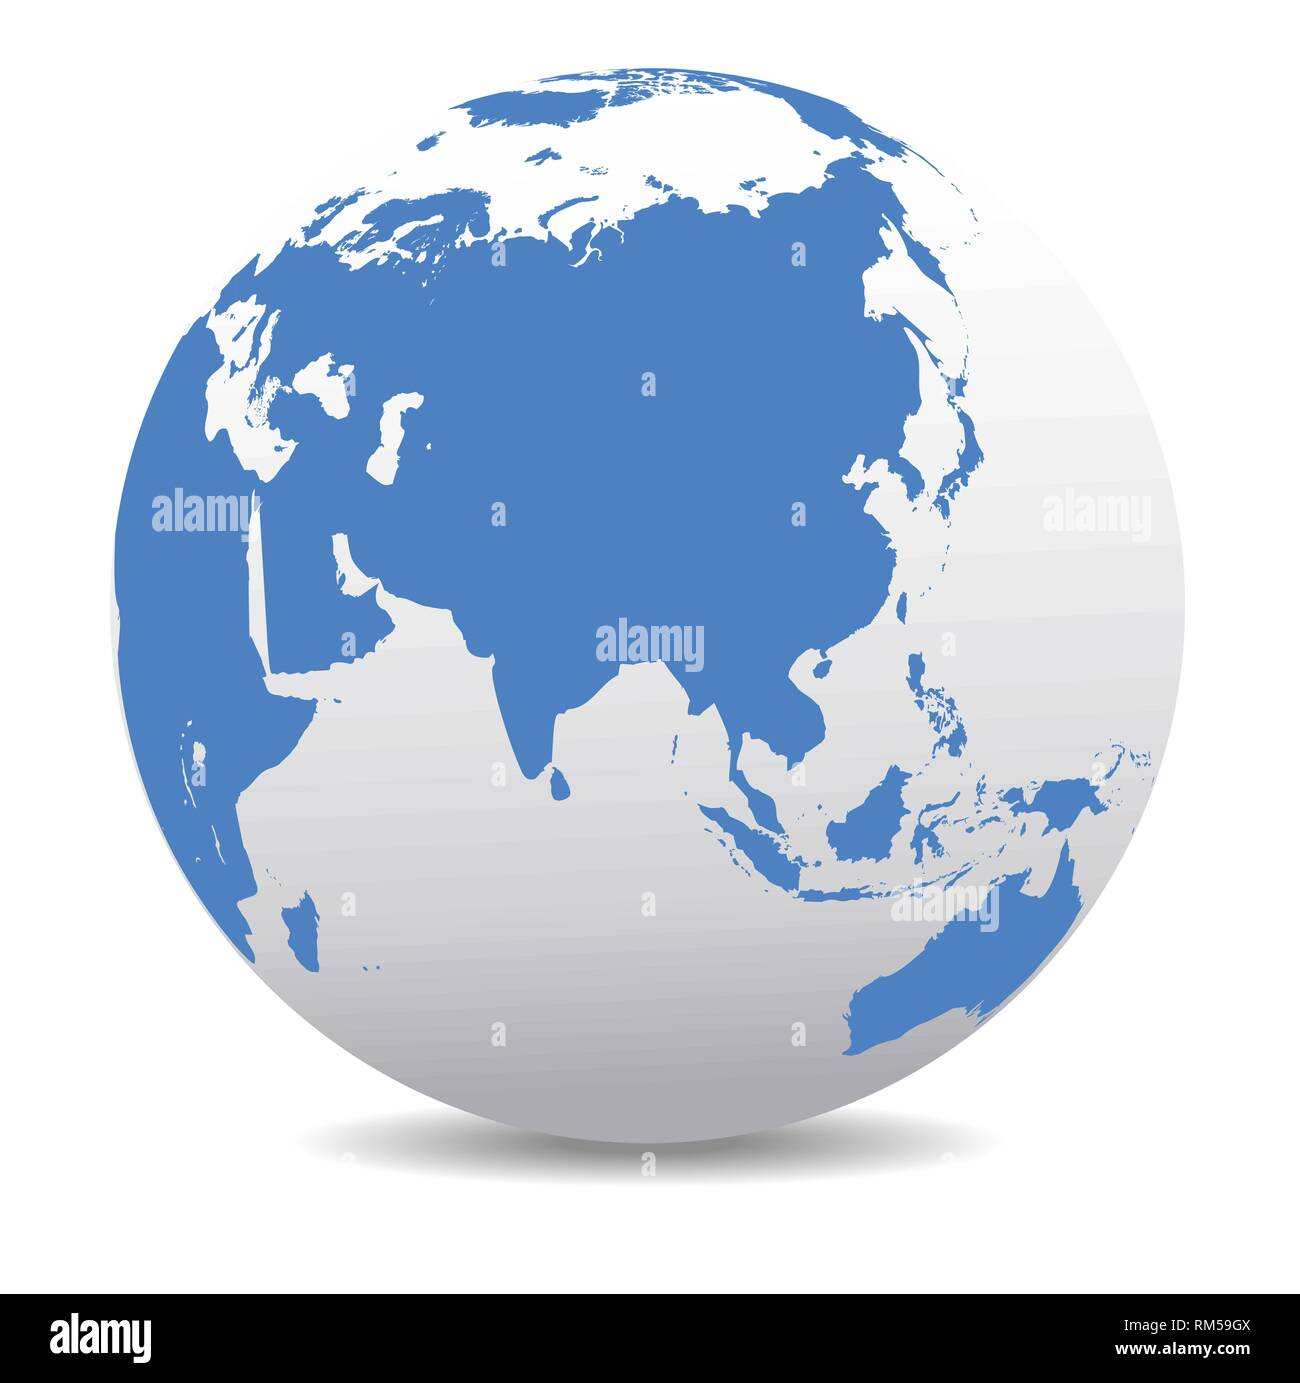 China, Thailand, Indonesia, India, Africa, Japan, Malaysia, Australia, Indian Ocean, Global World, Vector Map Icon of the World Globe - Stock Vector